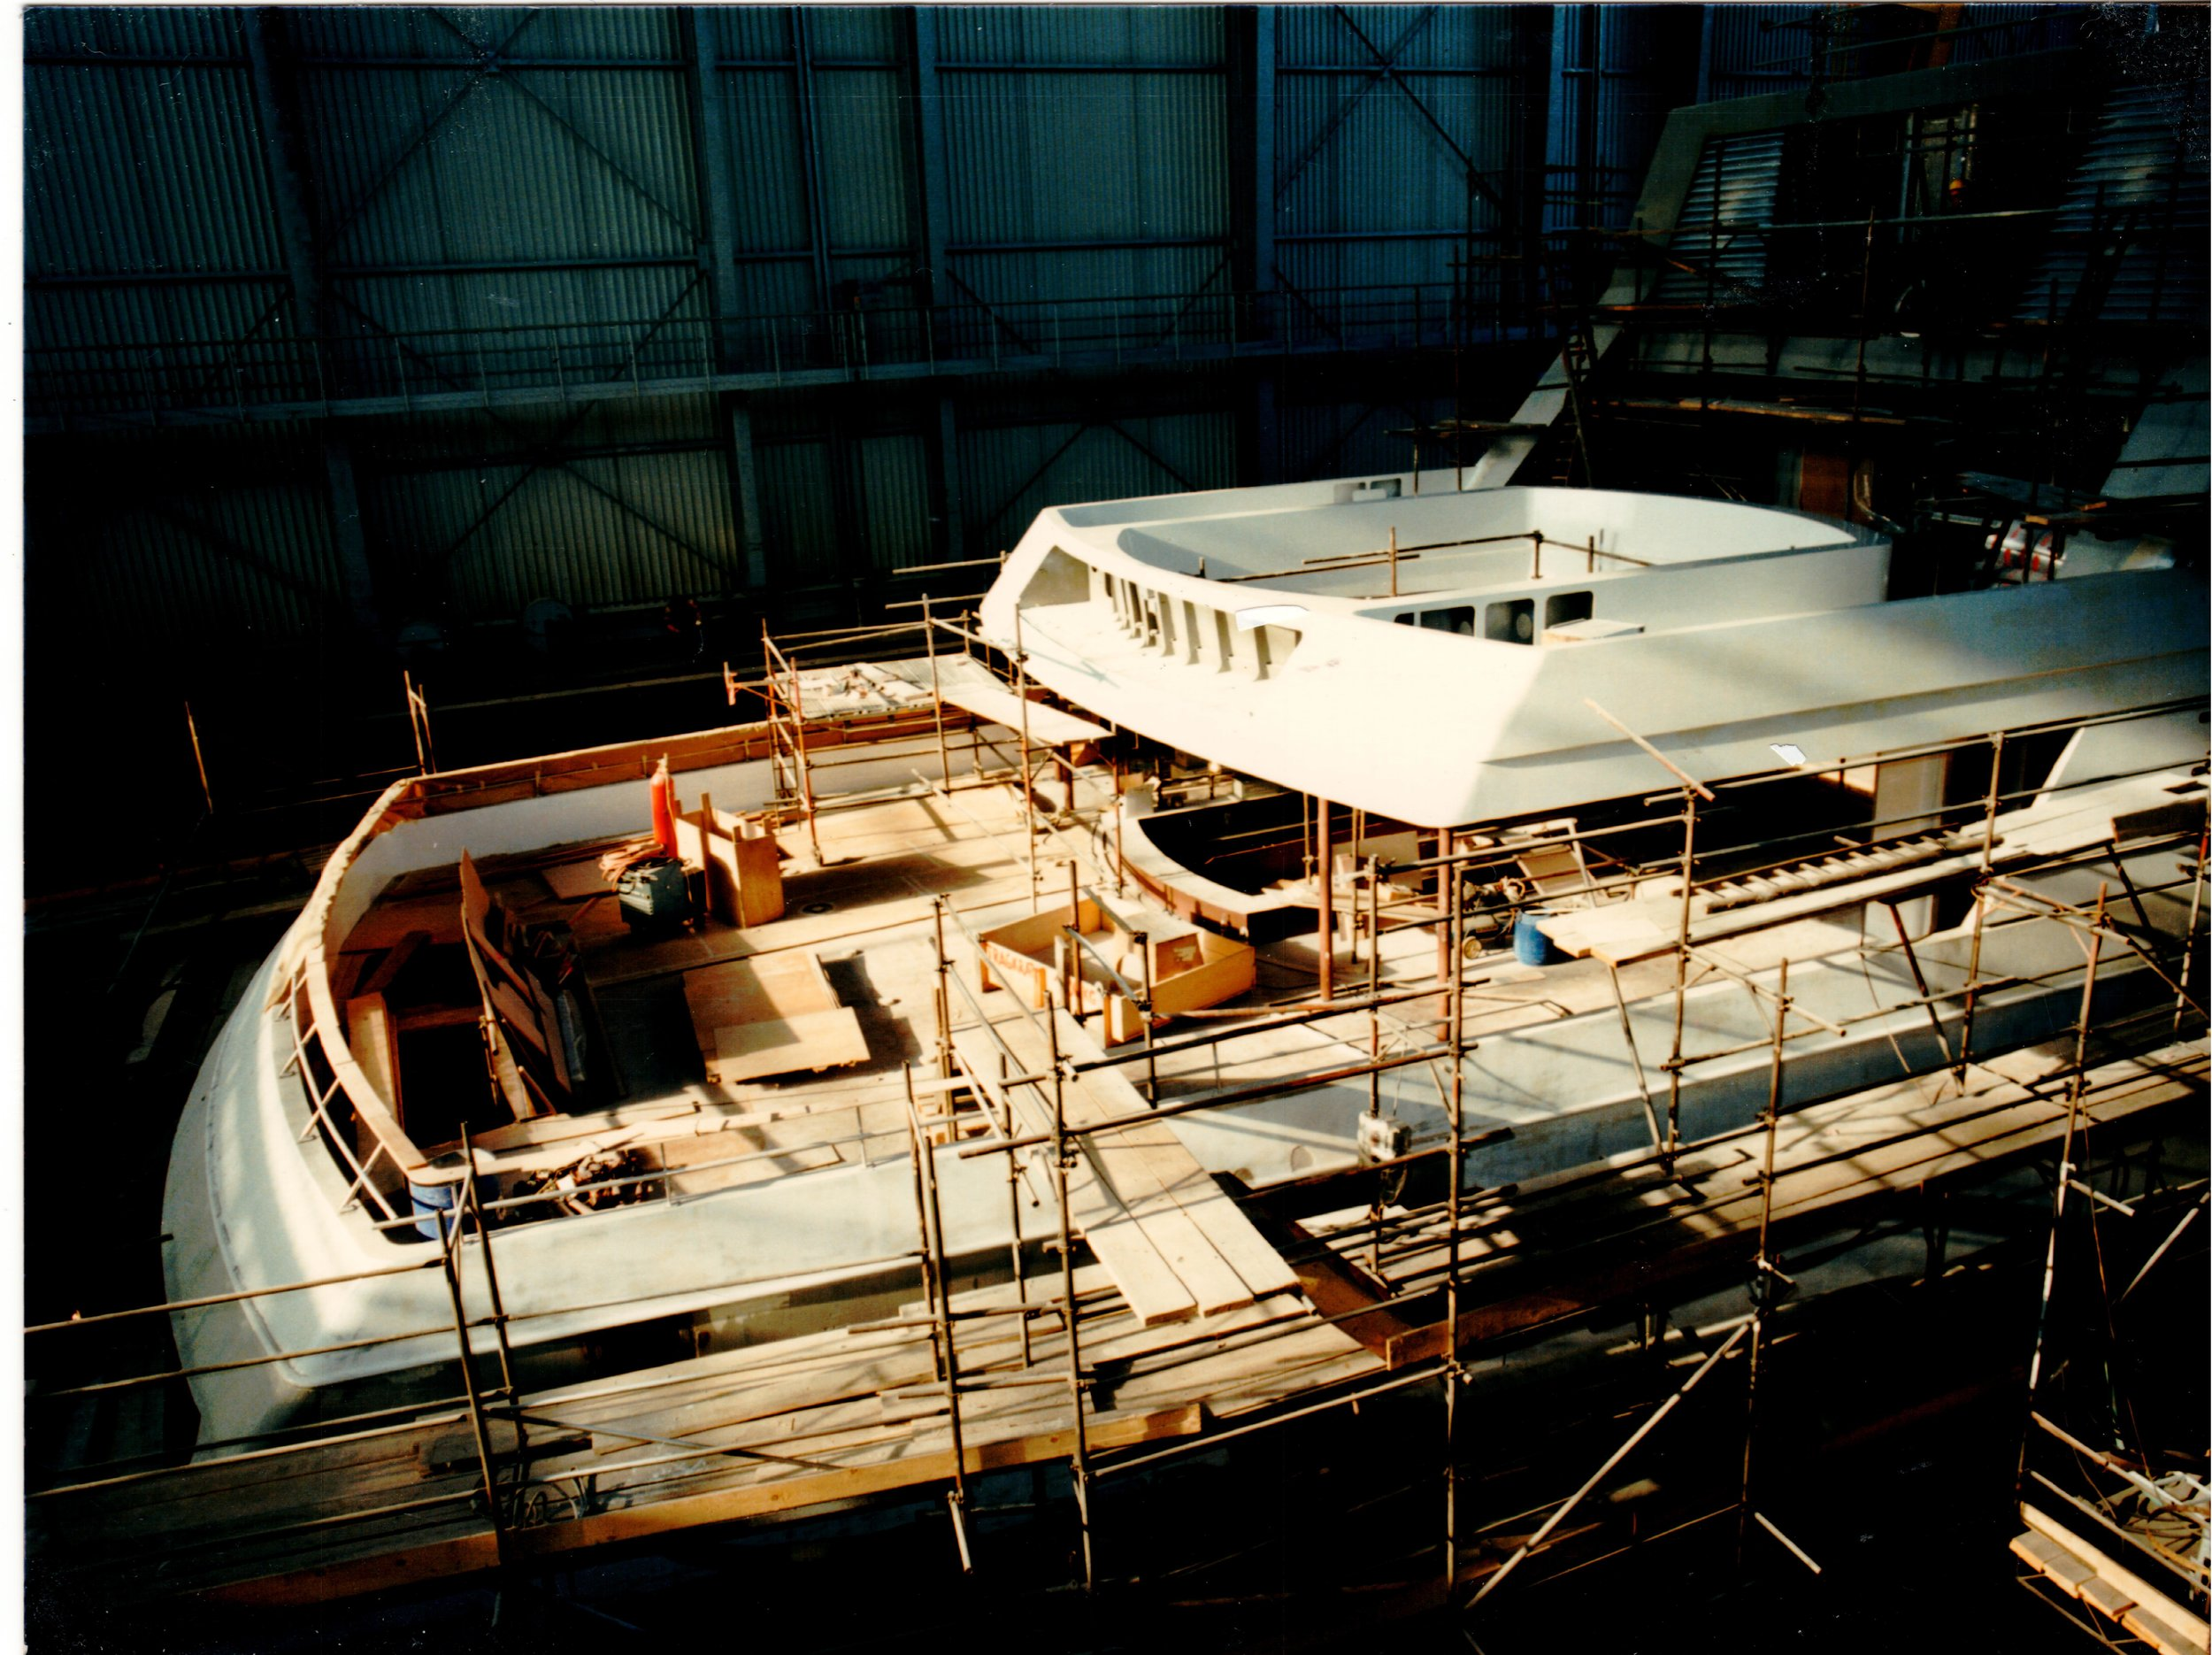 Yacht constructed at Blohm & Voss shipyard in Hamburg, Germany